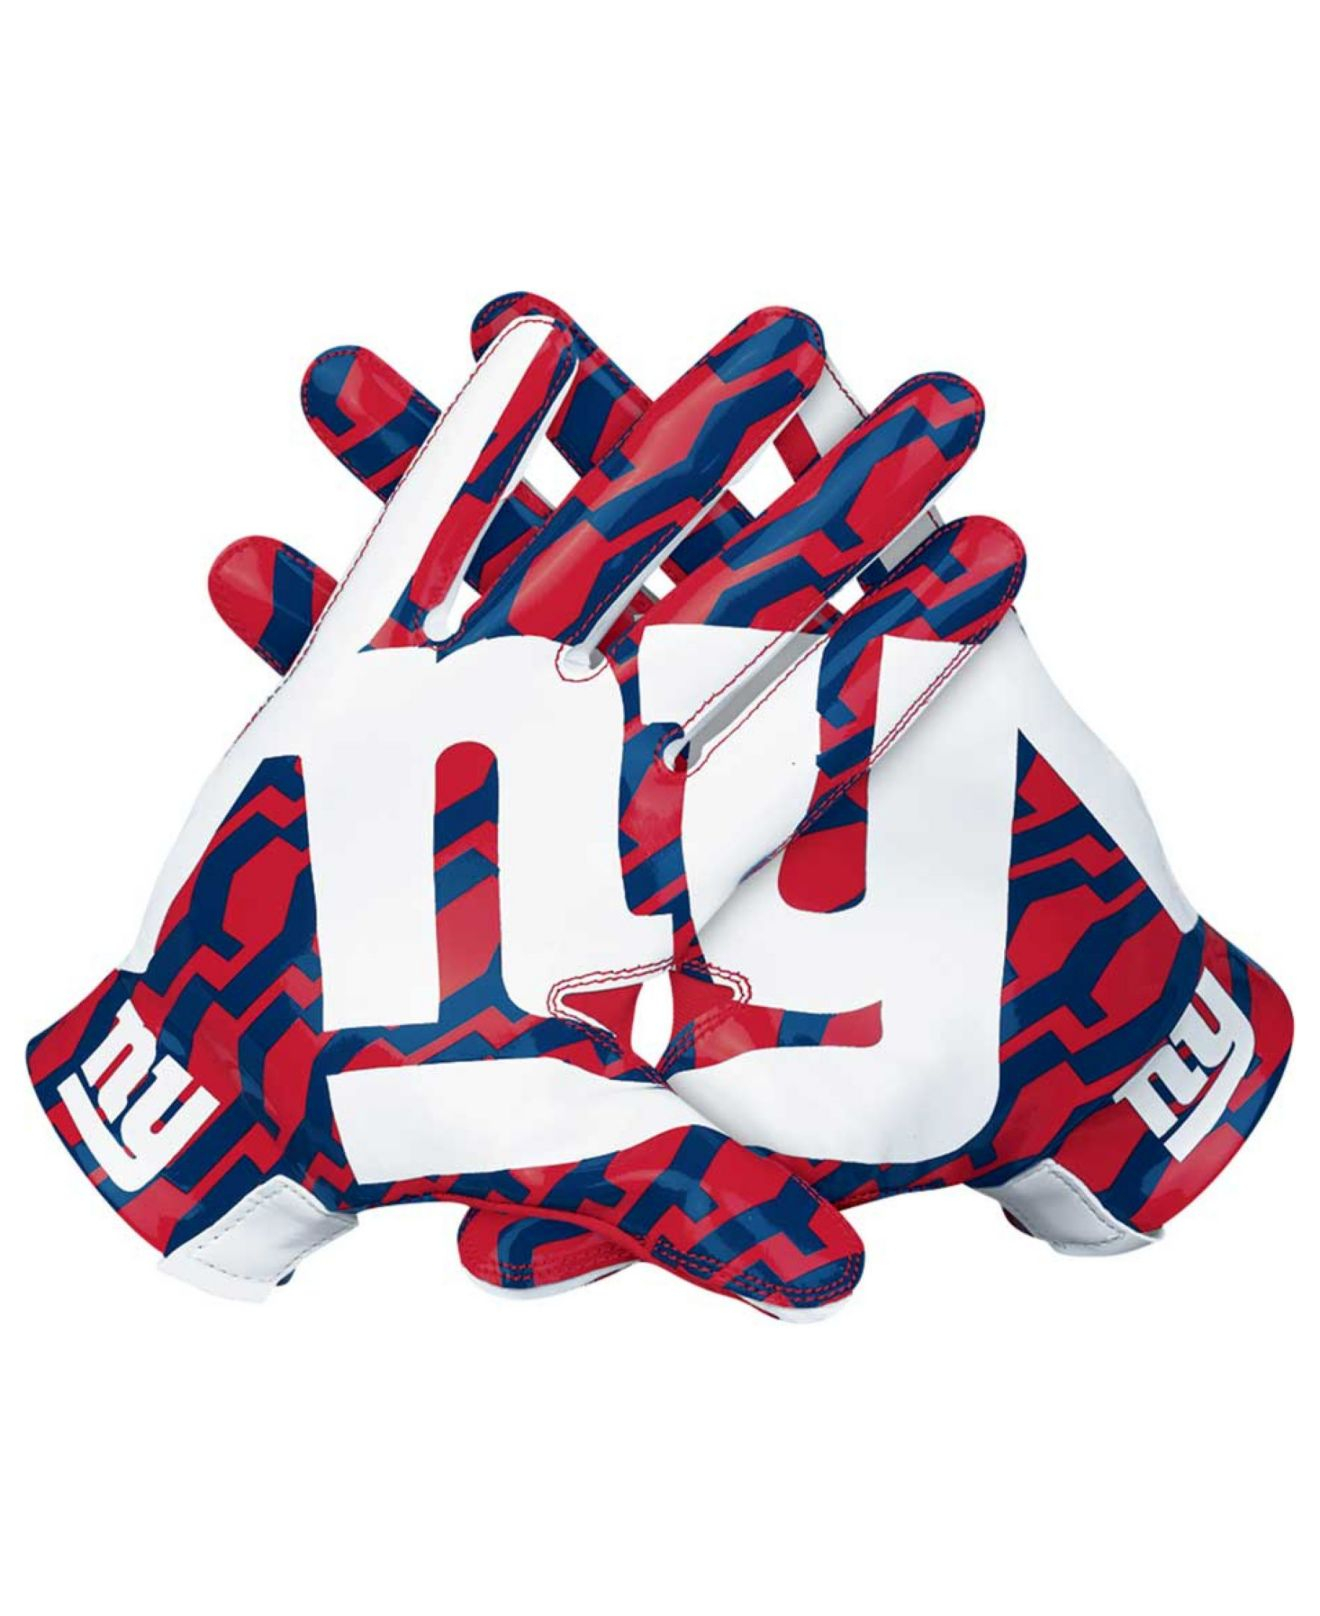 3b2eb2408 Lyst - Nike New York Giants Vapor Fly Team Authentic Glove in Blue ...